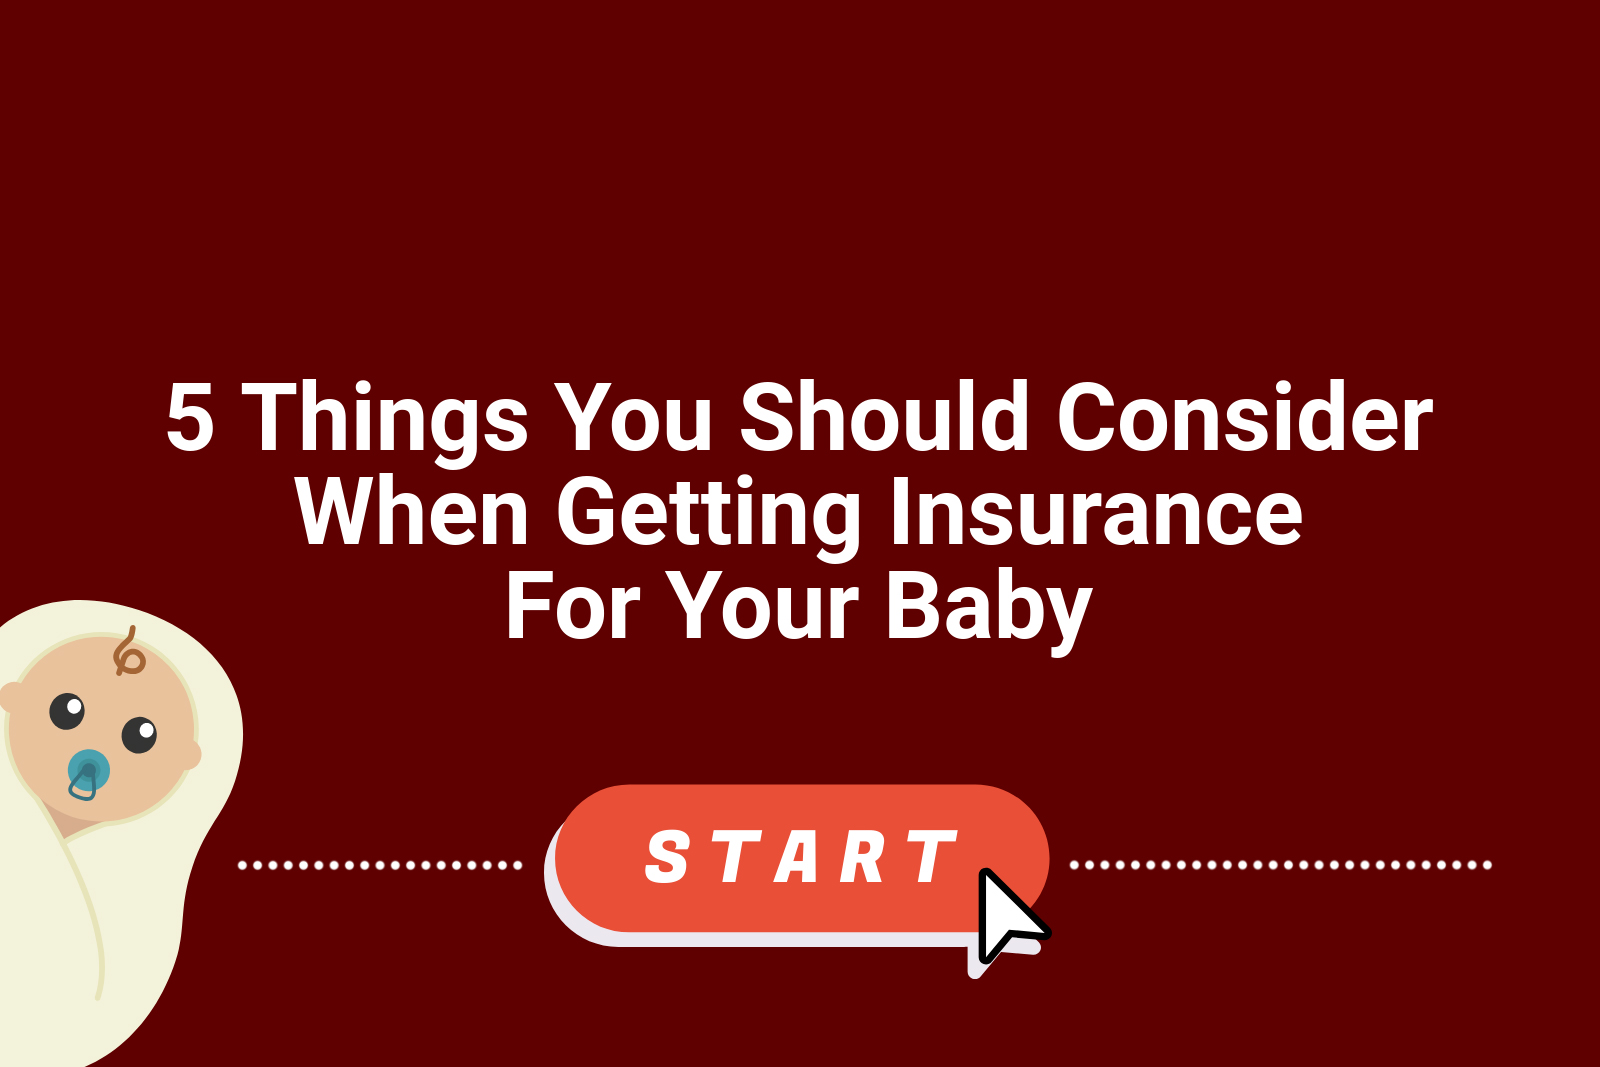 5 things to consider when getting insurance for your baby